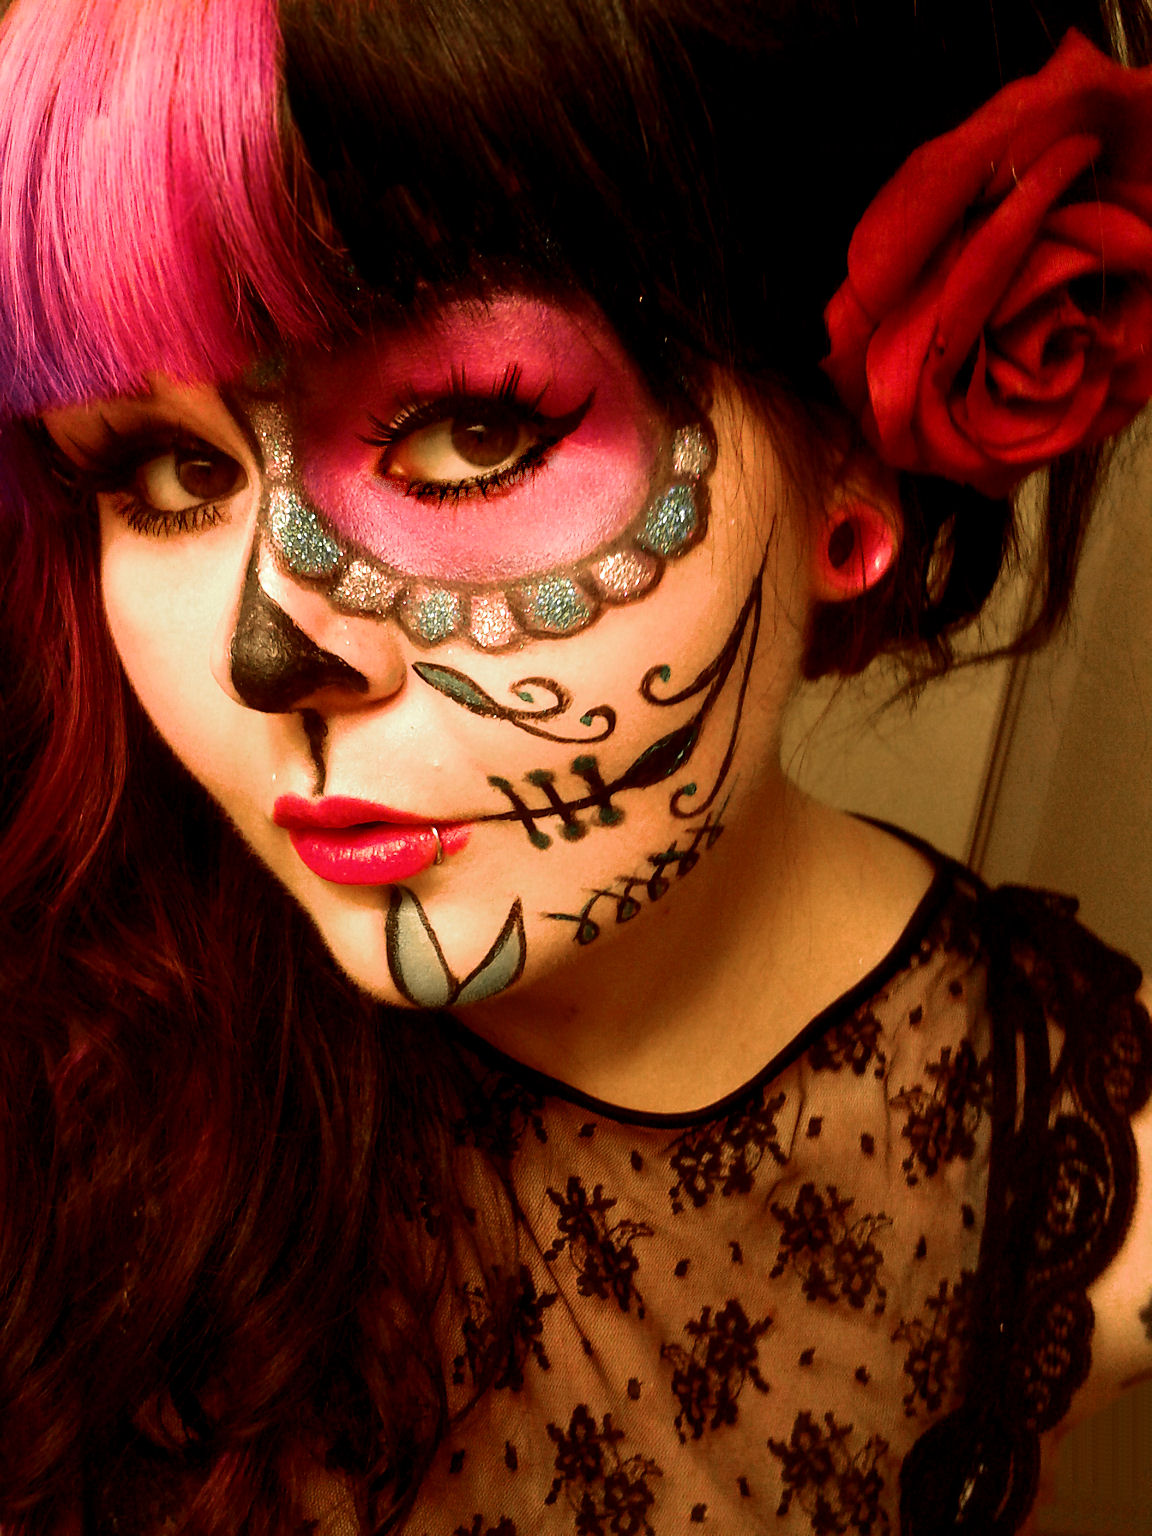 ... Makeup Addict): Day Of The Dead Sugar Skull MakeUp Tutorial And Look